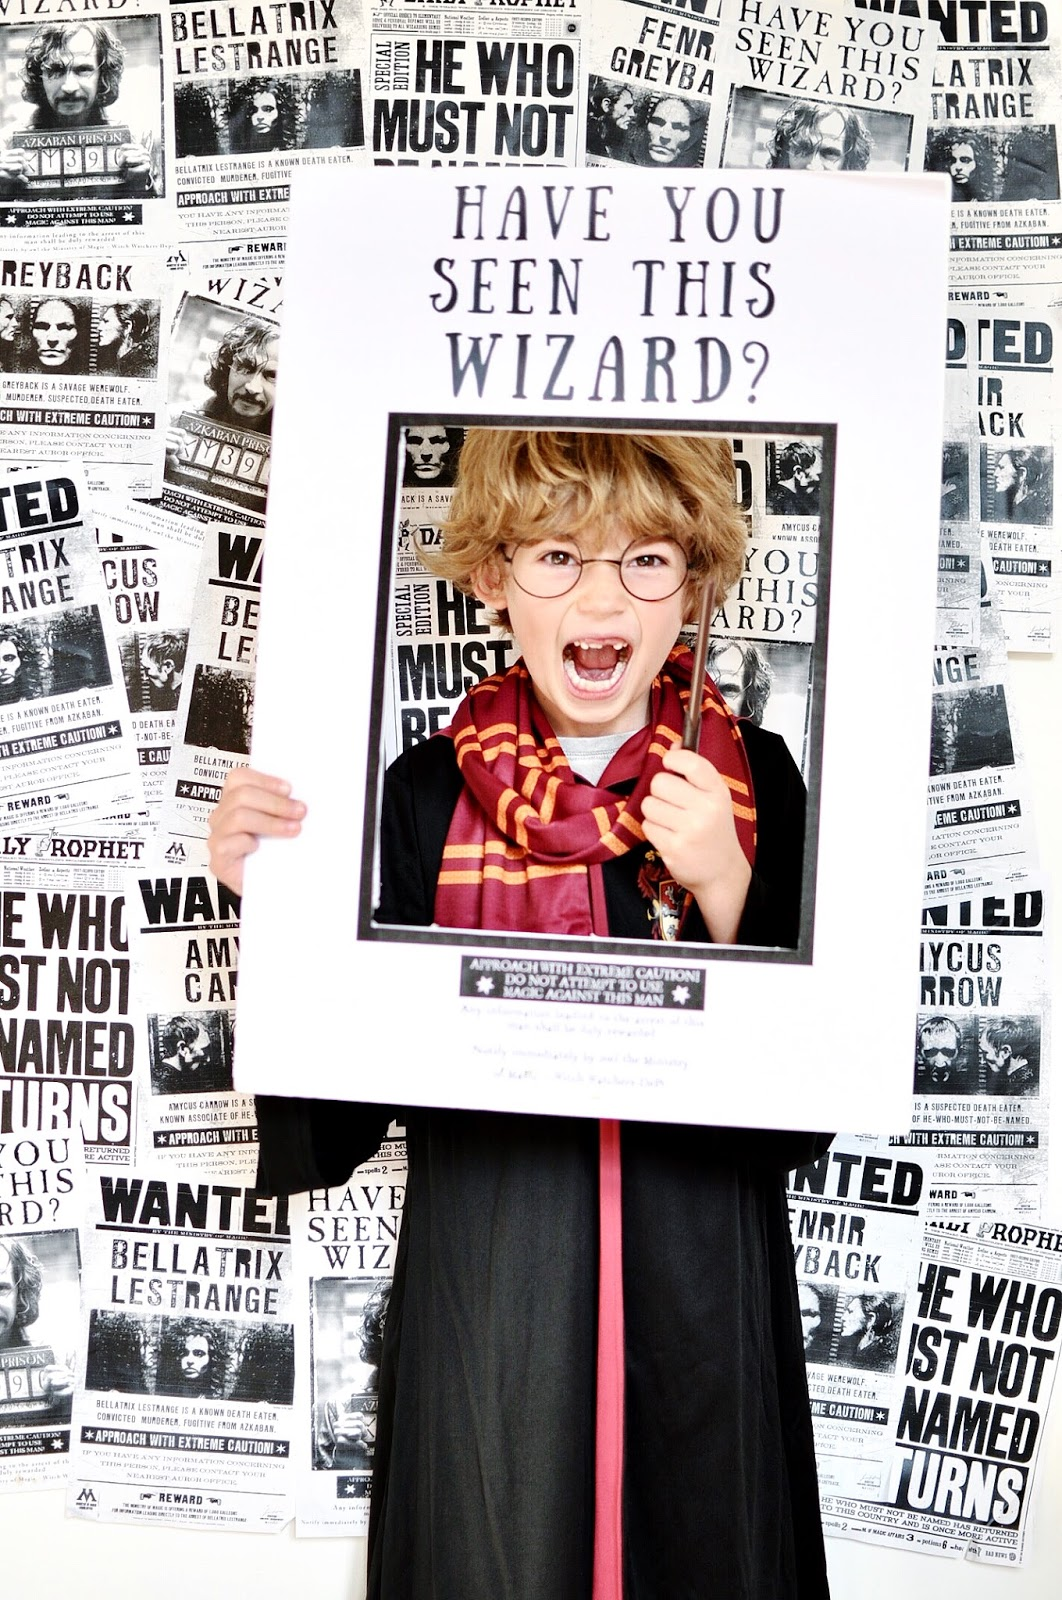 harry potter party, Have you seen this wizard,  harry potter party ideas, harry party free printable, harry potter decorations, death eater, hogwarts party, Seven year old birthday party, boys birthday ideas, Halloween ideas